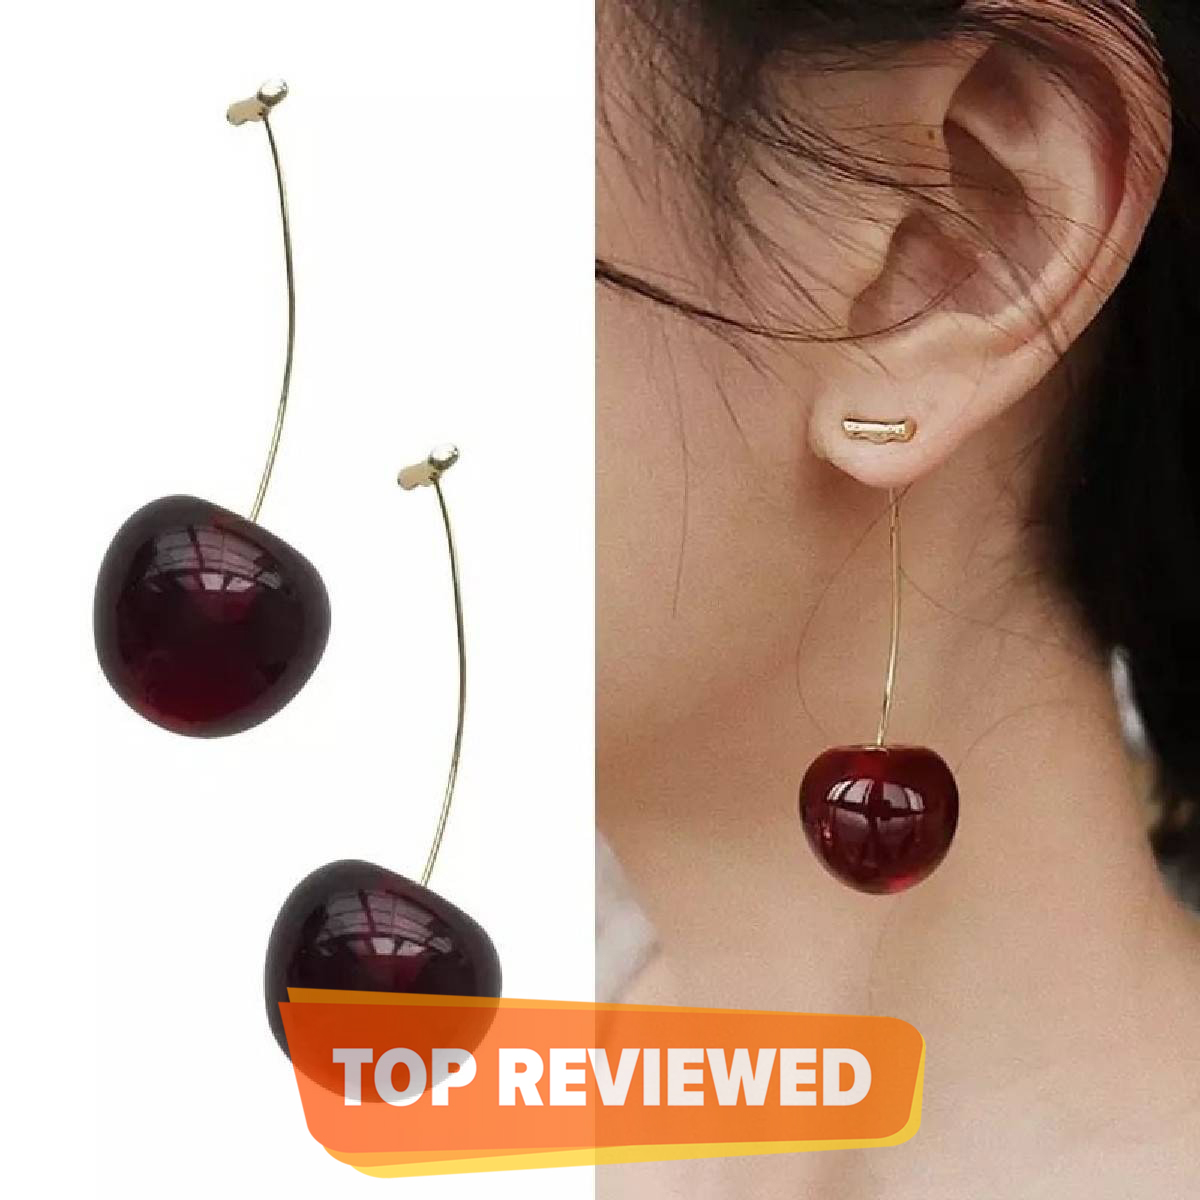 Fashion Jewelry long earrings with temperament of cherry nails and fruits